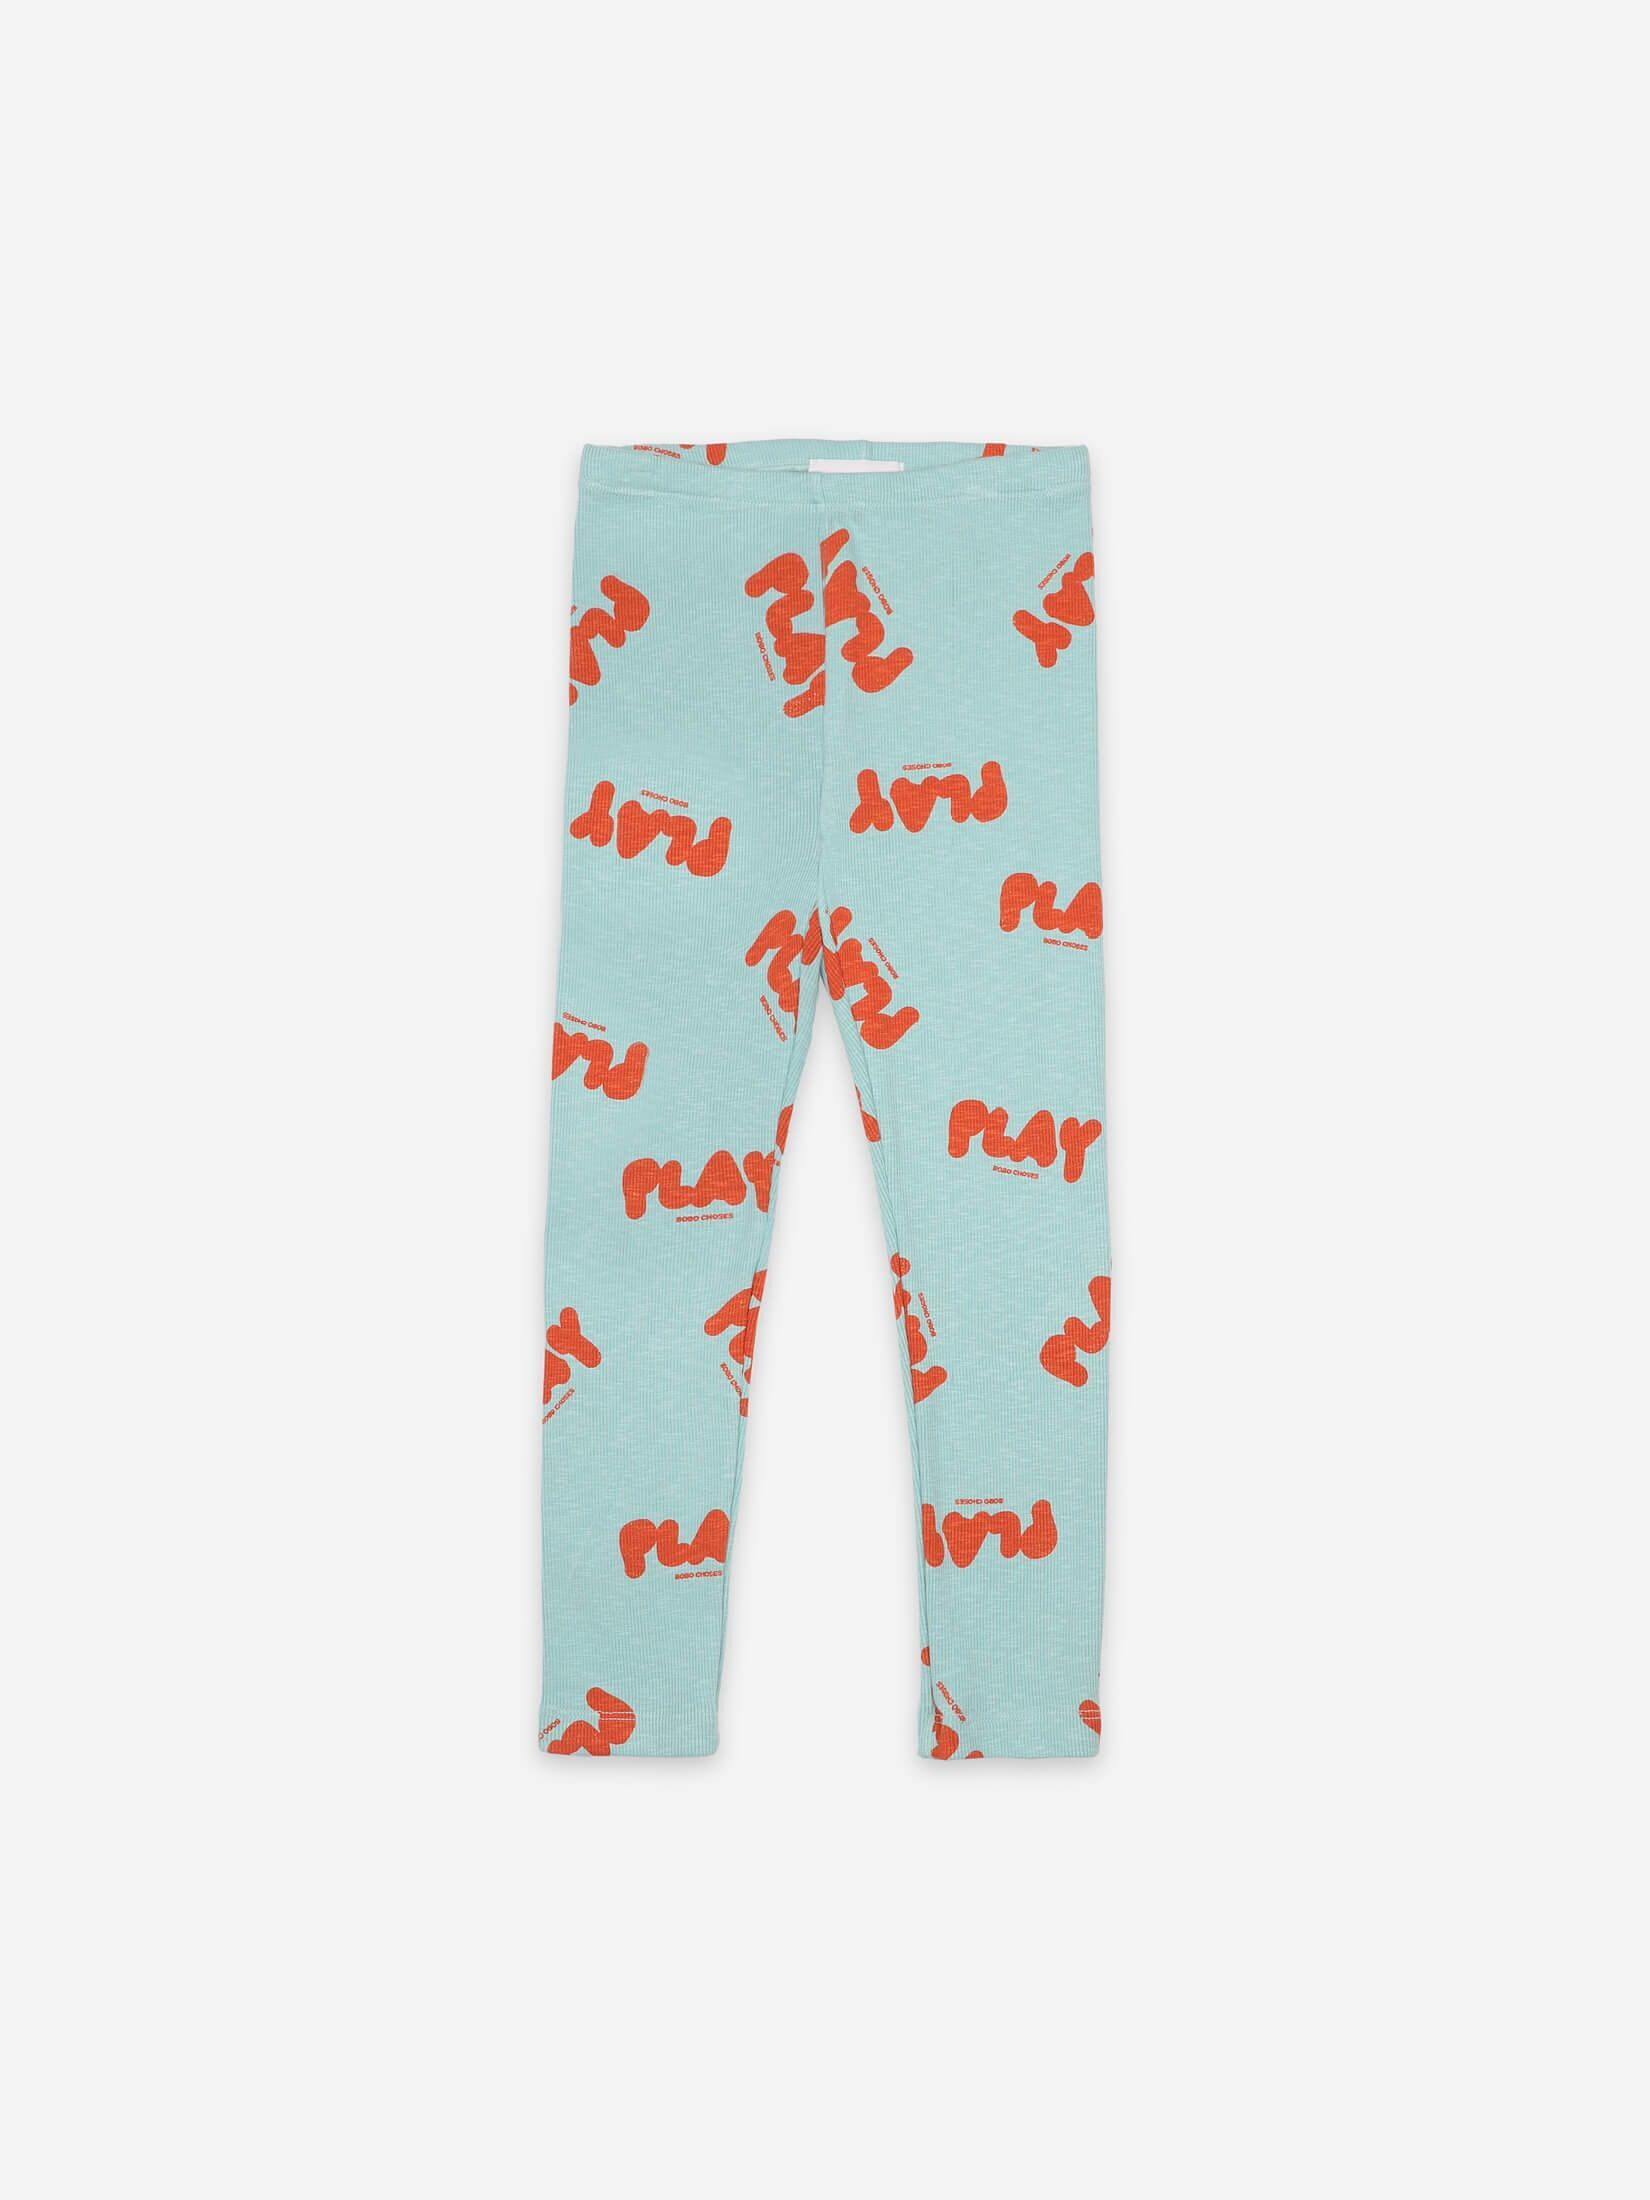 BOBO CHOSES ボボショセス Play All Over Leggings size:2-3Y(95-100)~8-9Y(125-135)